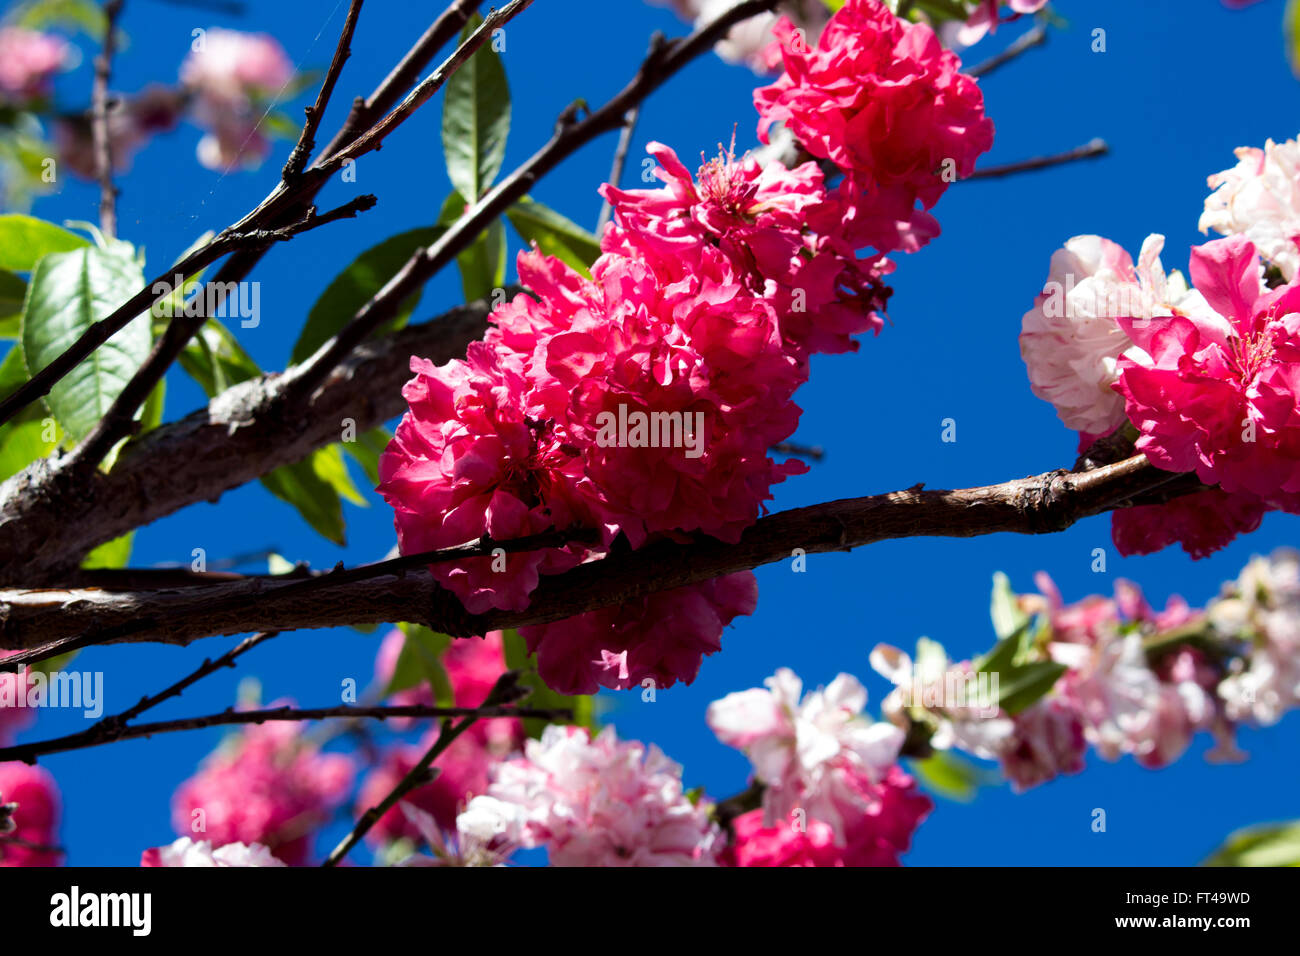 Pink two toned  double frilly flowers of an ornamental fruit tree blossoming in spring adds colour and charm  to - Stock Image